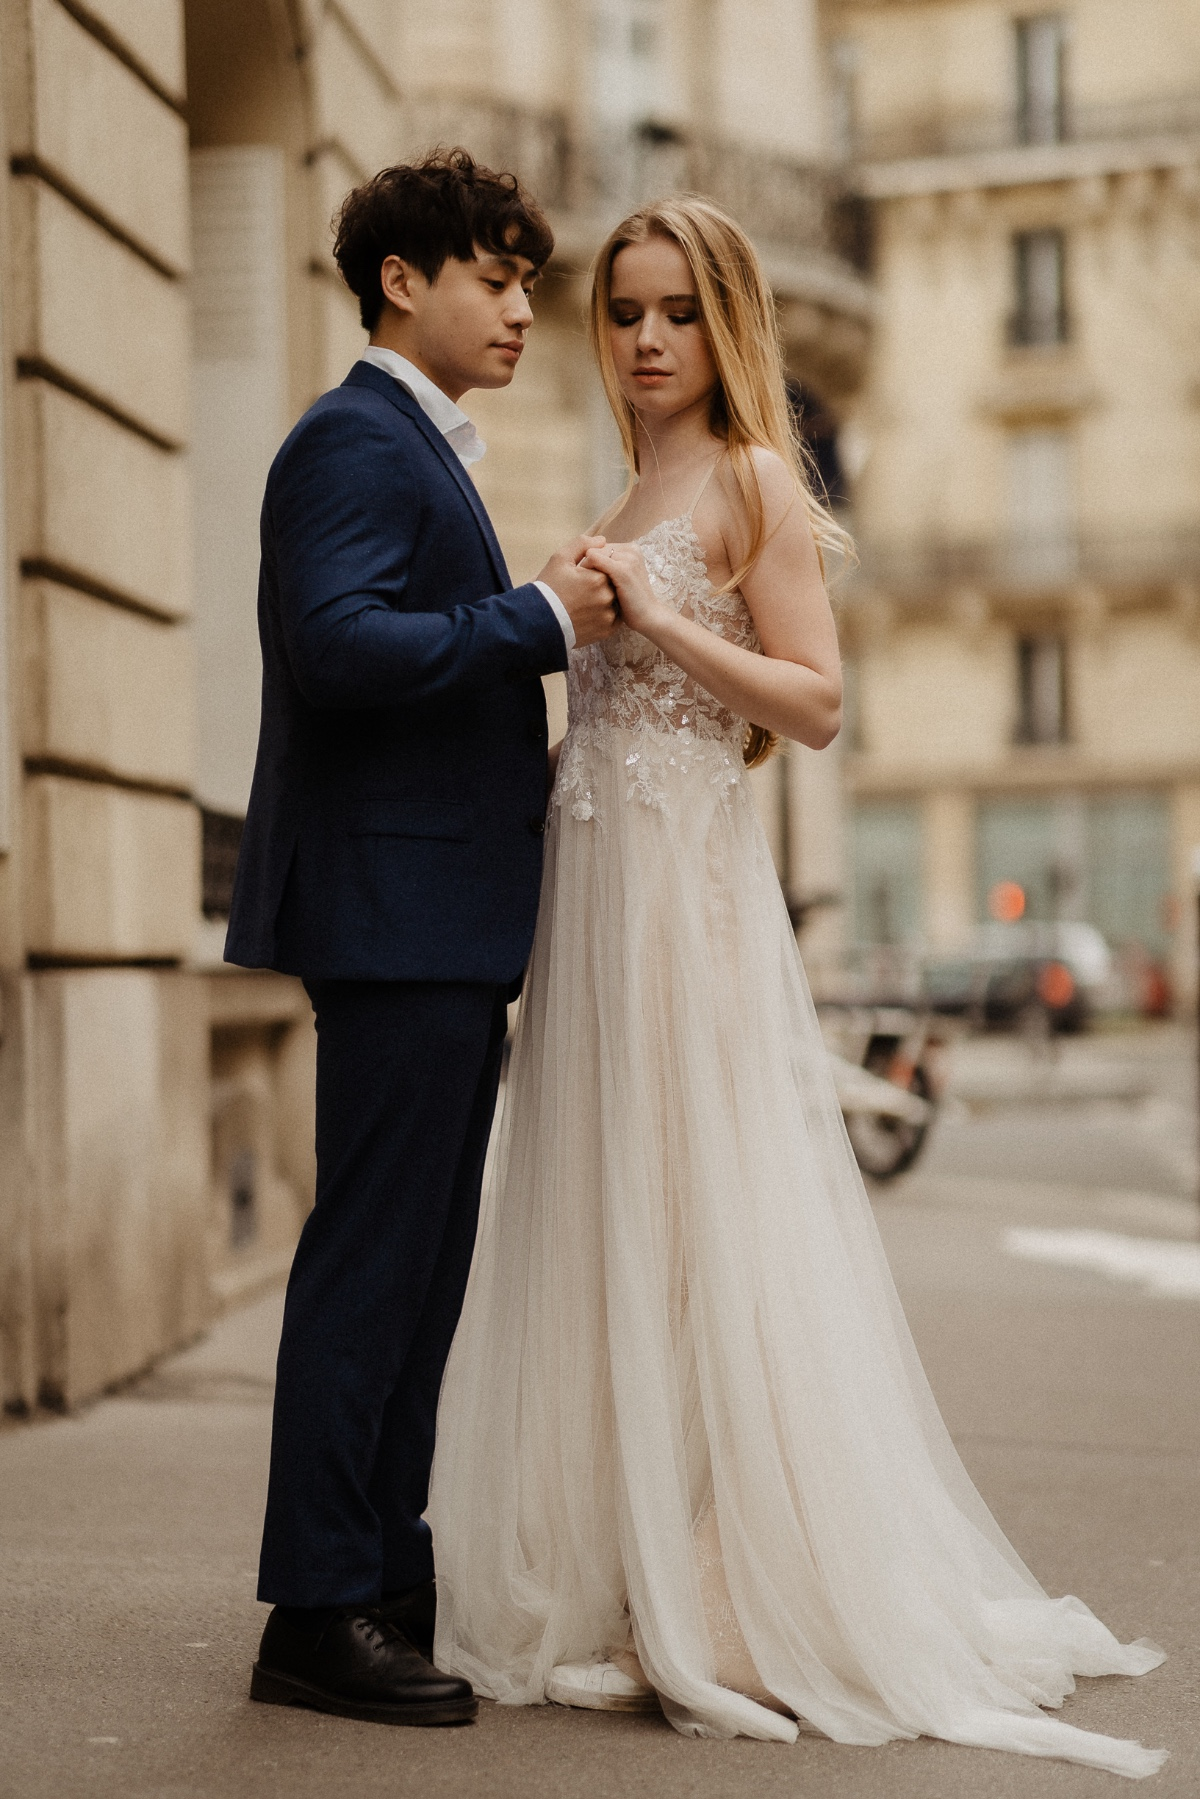 Romantic and lovely elopement in France